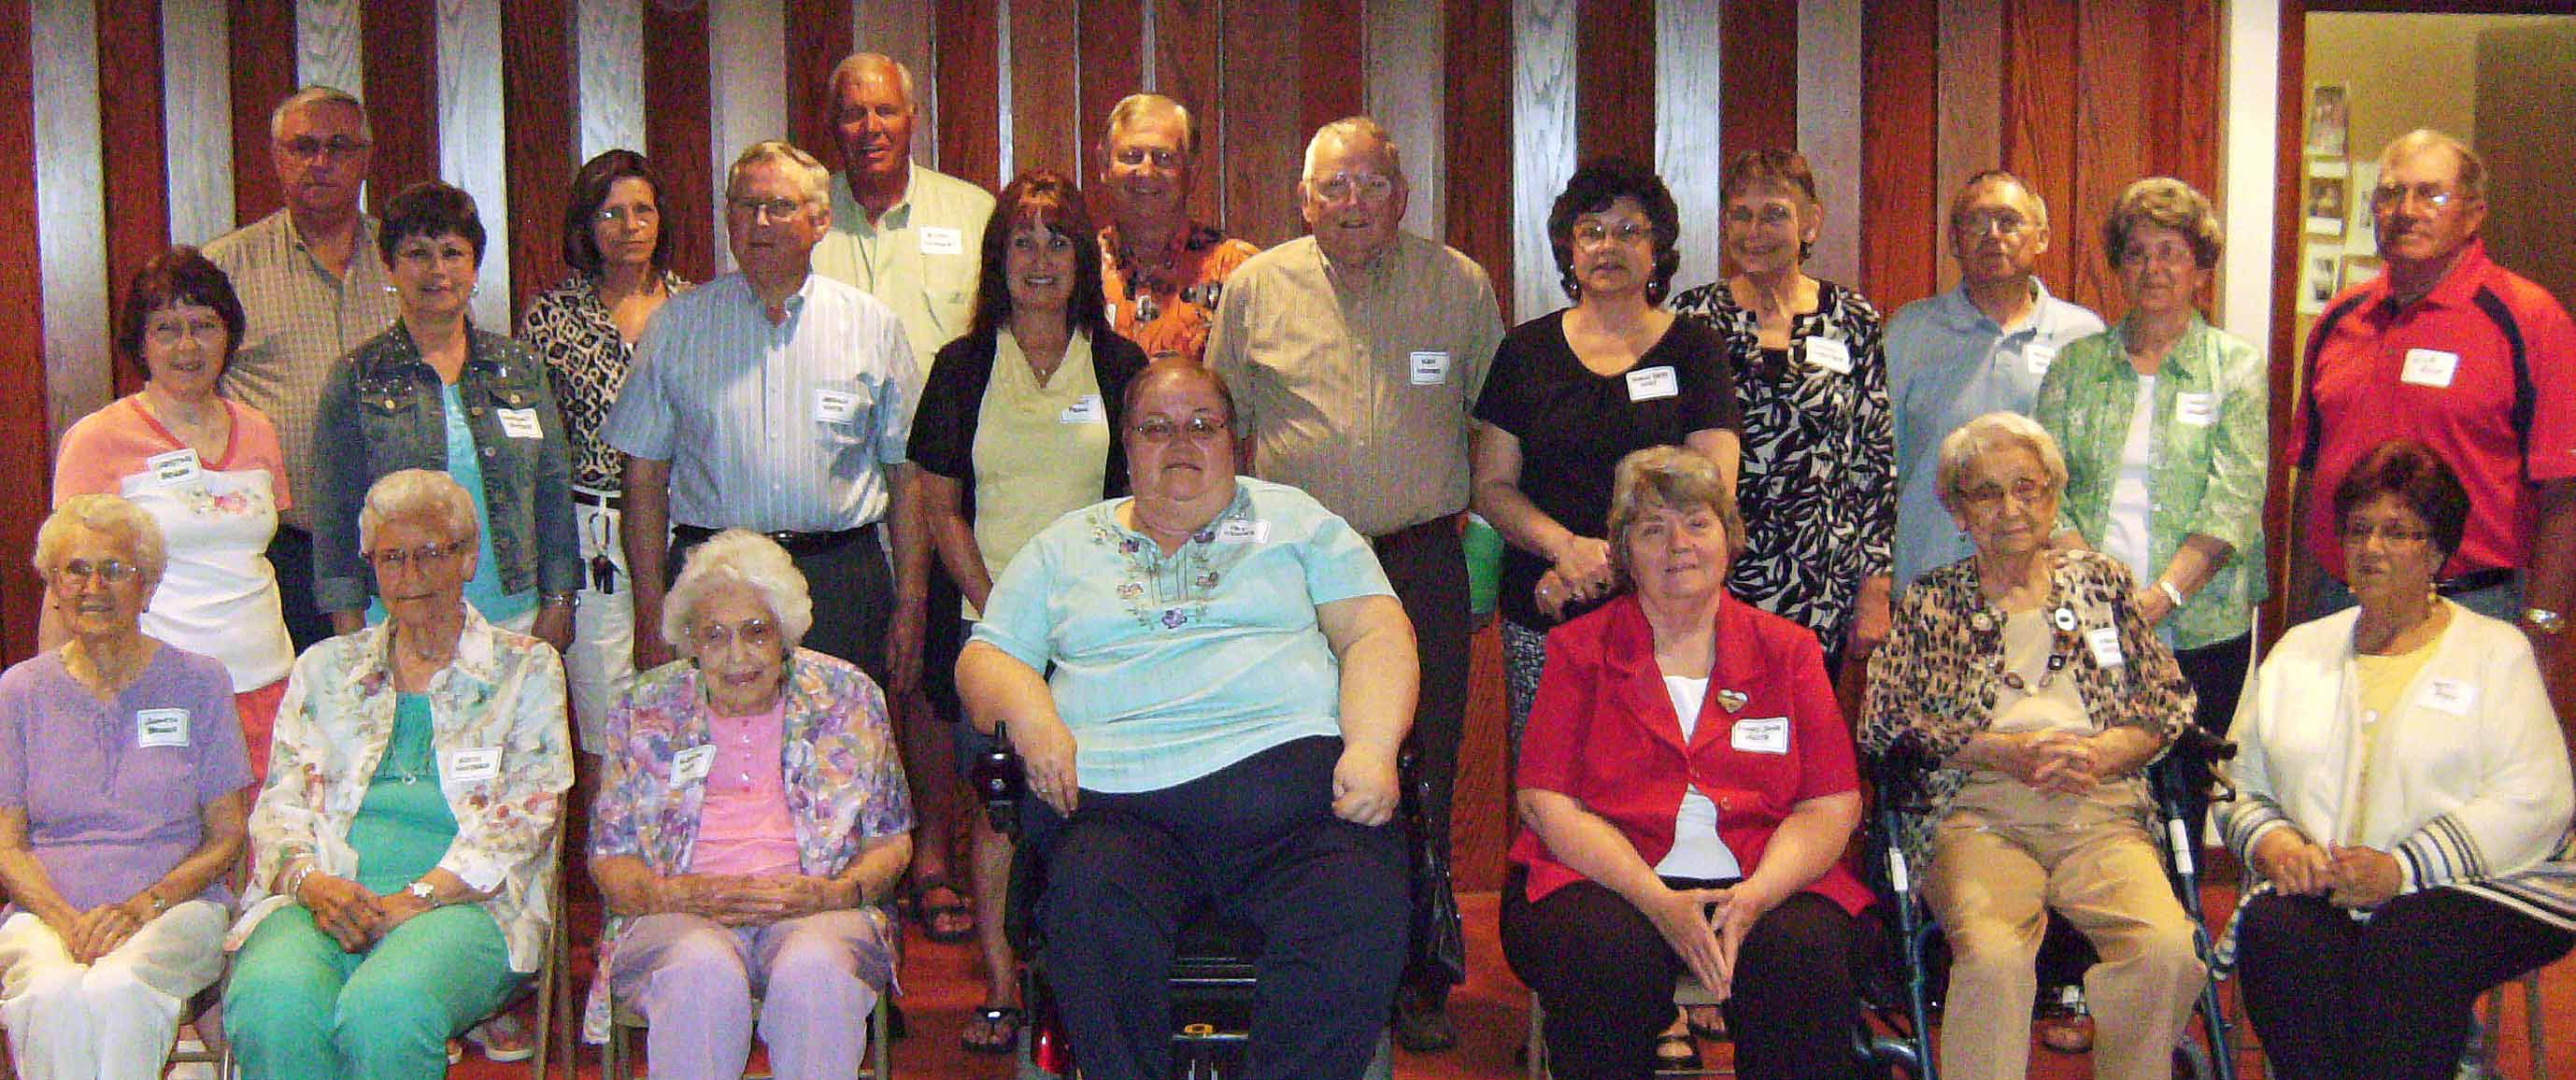 2013 Winters Reunion Group picture